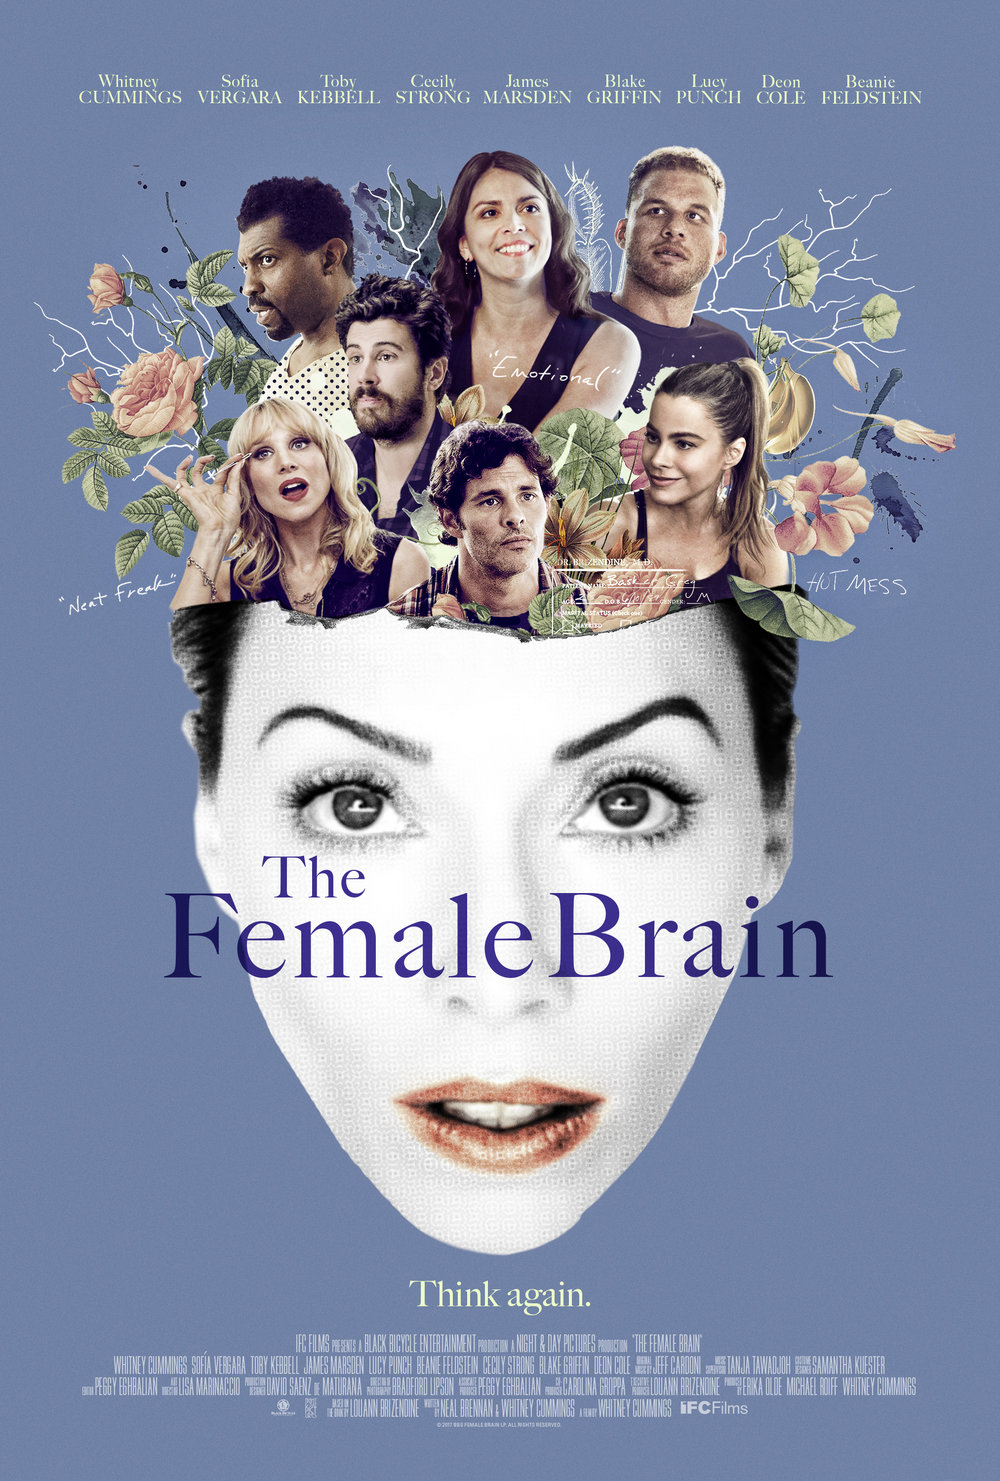 The Female Brain - Playing in select cities, SEE BELOW